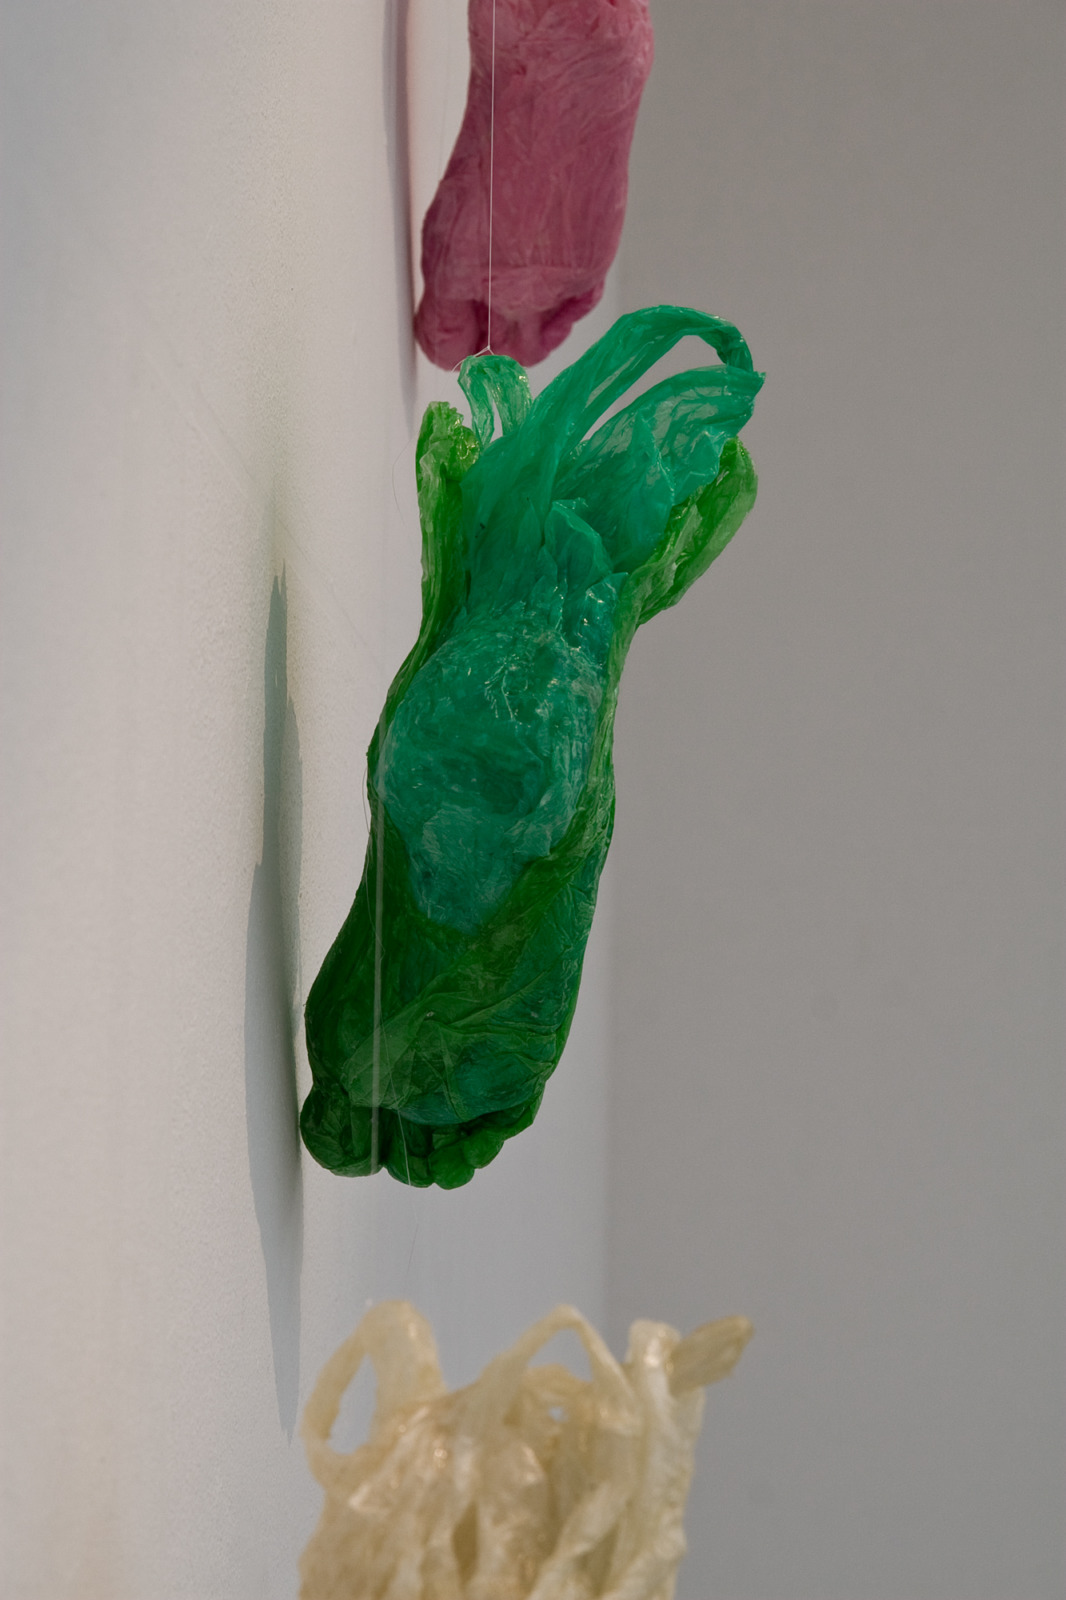 Feet (Flavor of the Month), cast resin with colored plastic shopping bags, 2008-2014, 10 cm x 27 cm x 20 cm (8 elements possible).